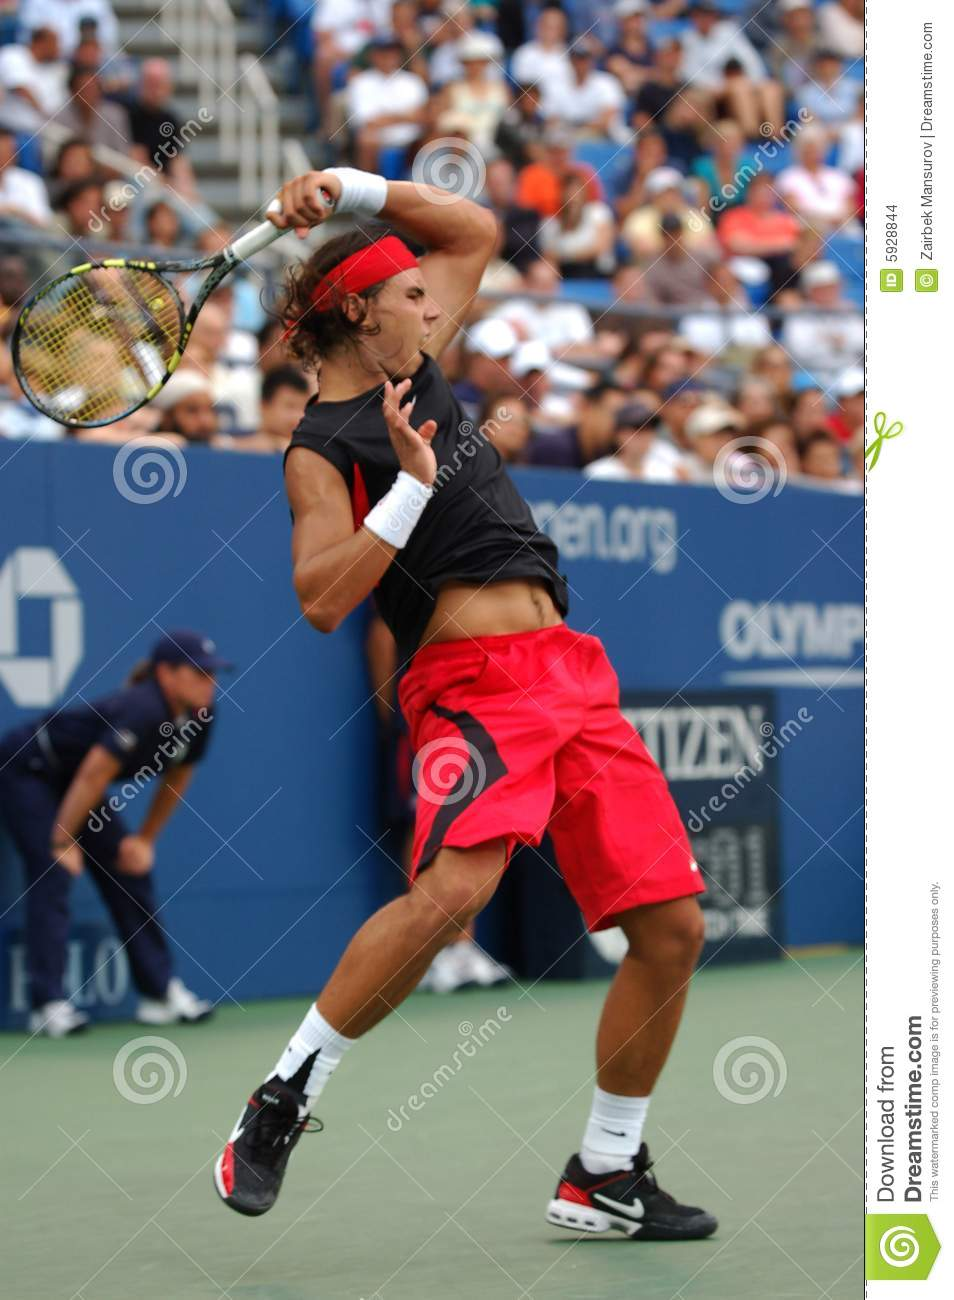 Nadal aux USA ouvrent 2006 (21)